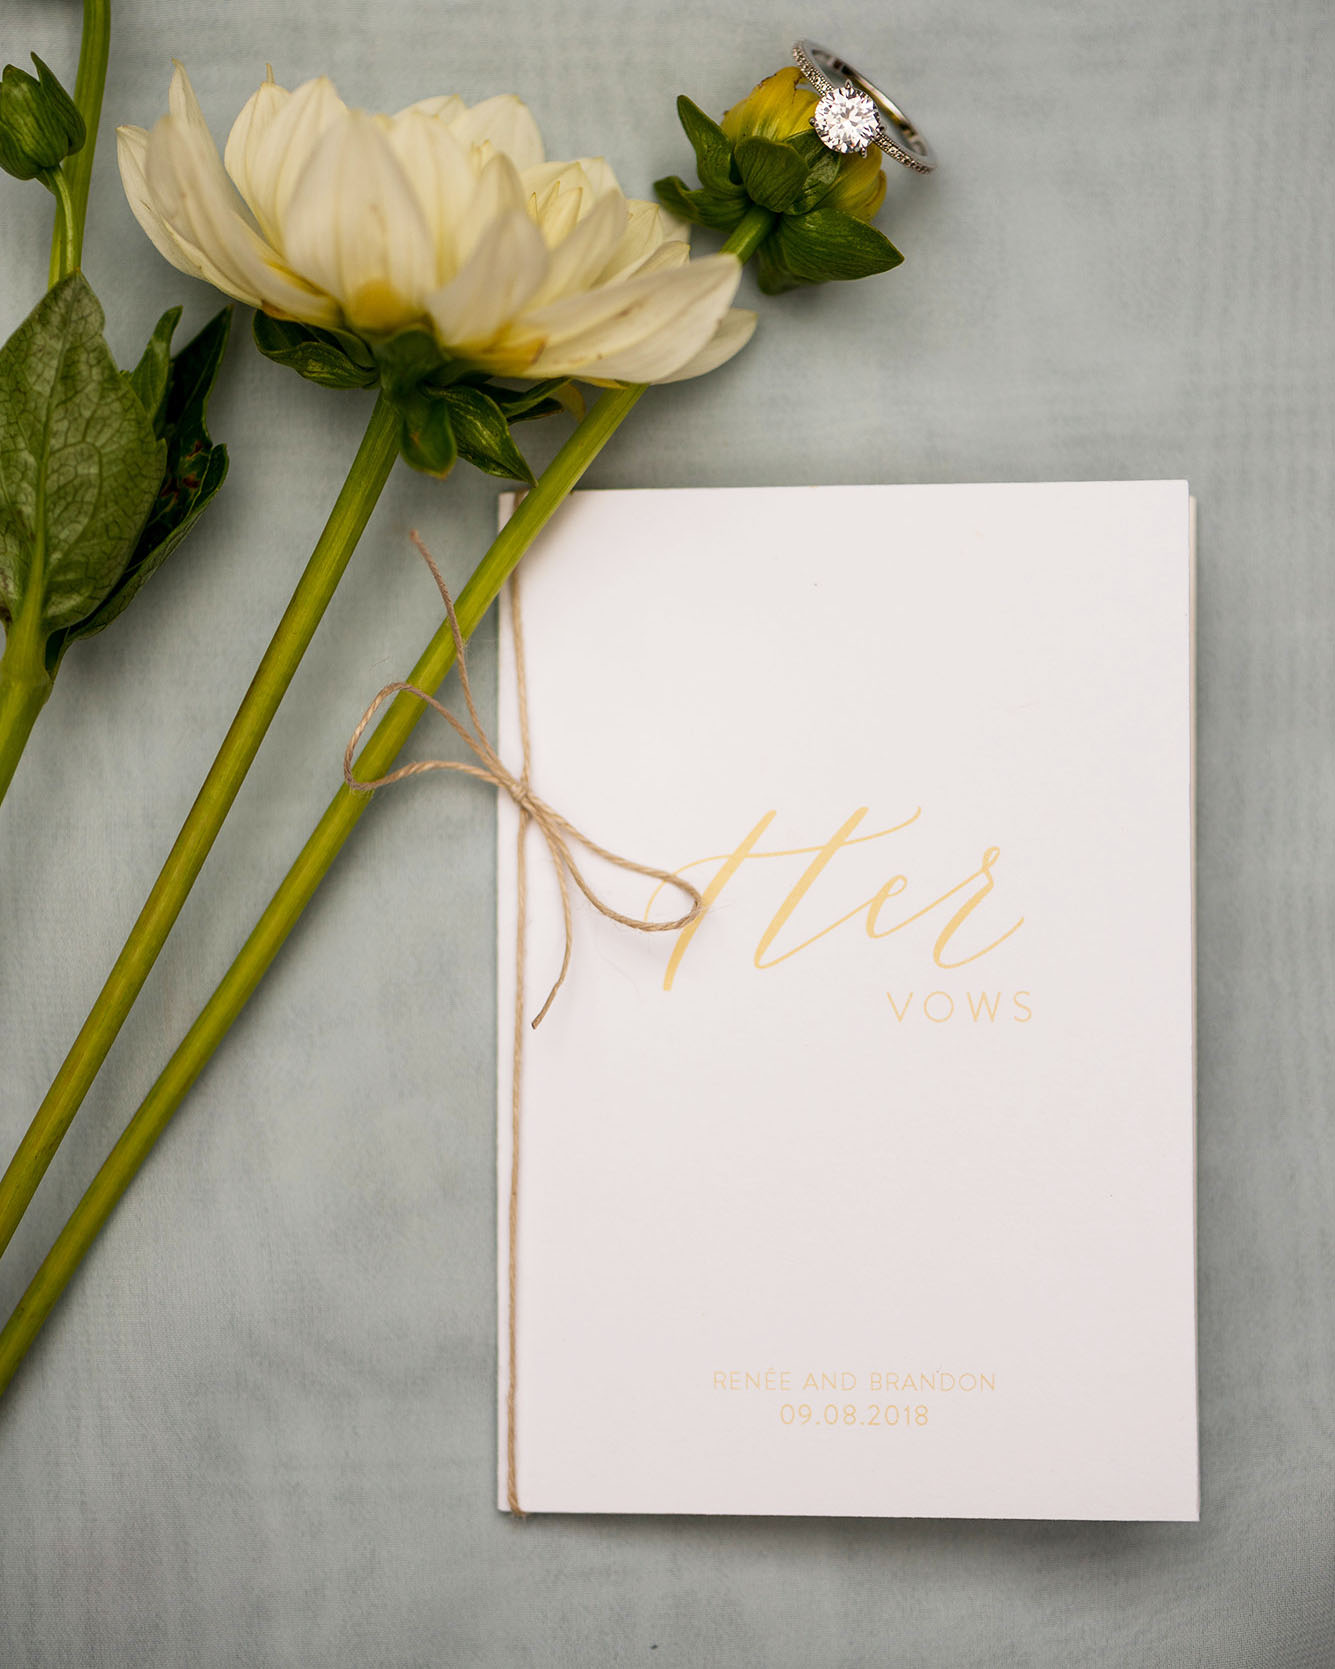 Whimsical Garden Wedding Custom Vow Books. Photo by Tina Ricketts Photography. Host: Styled Shoots Across America